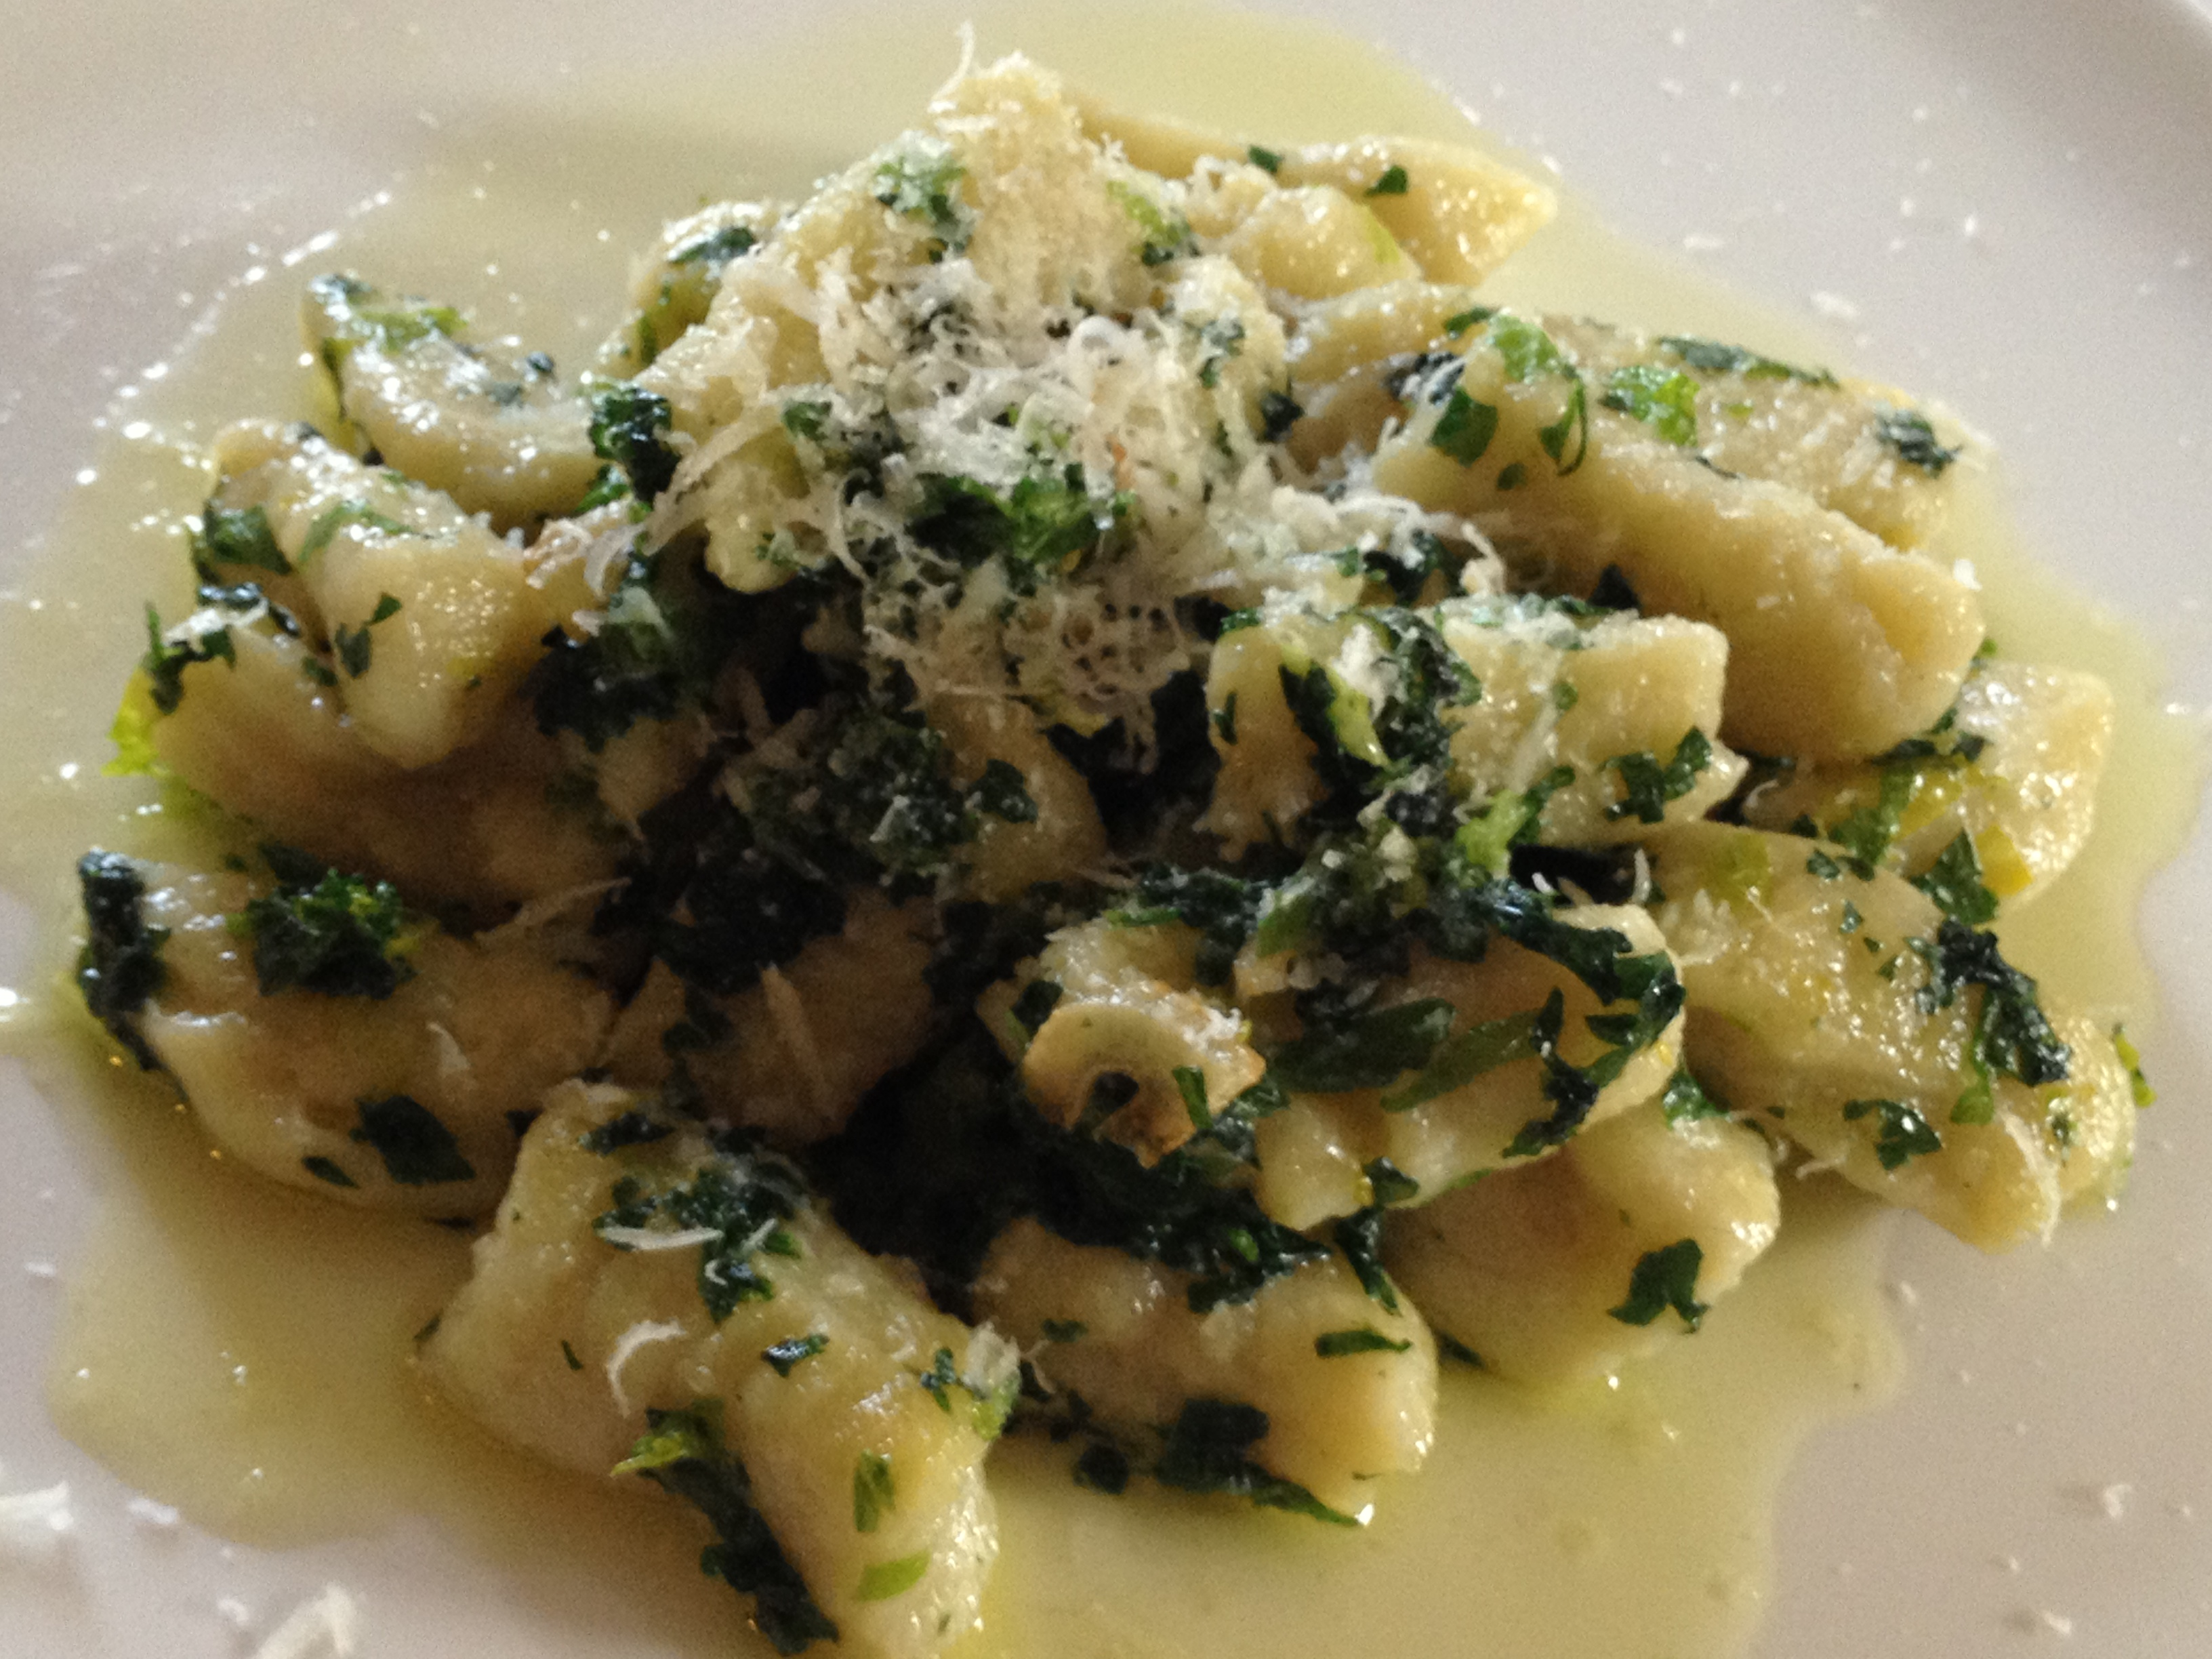 Celery and Potato Gnocchi With Herb Sauce